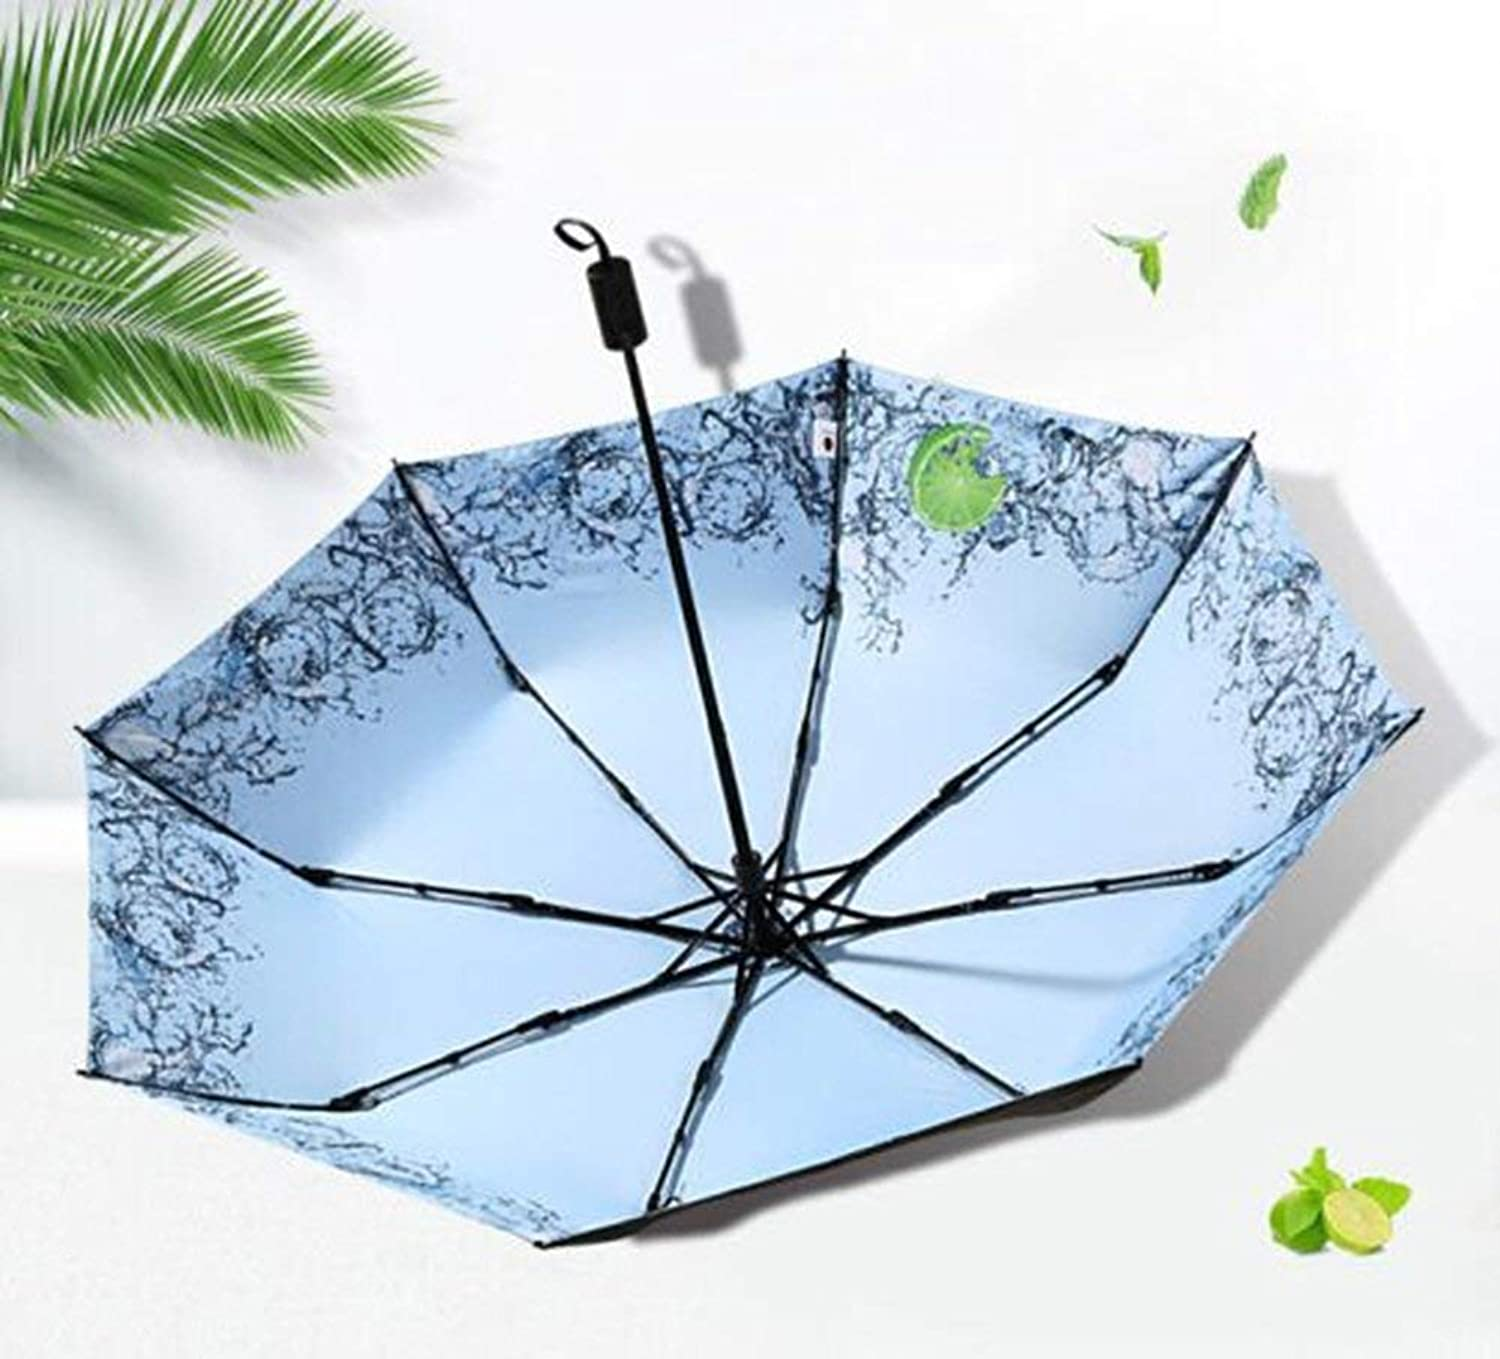 Three Fold Umbrella, Anti-Uv Umbrella Fold Reinforcement Windproof Rain Foldable, Non-Slip Handle Windproof Umbrella, ZDS